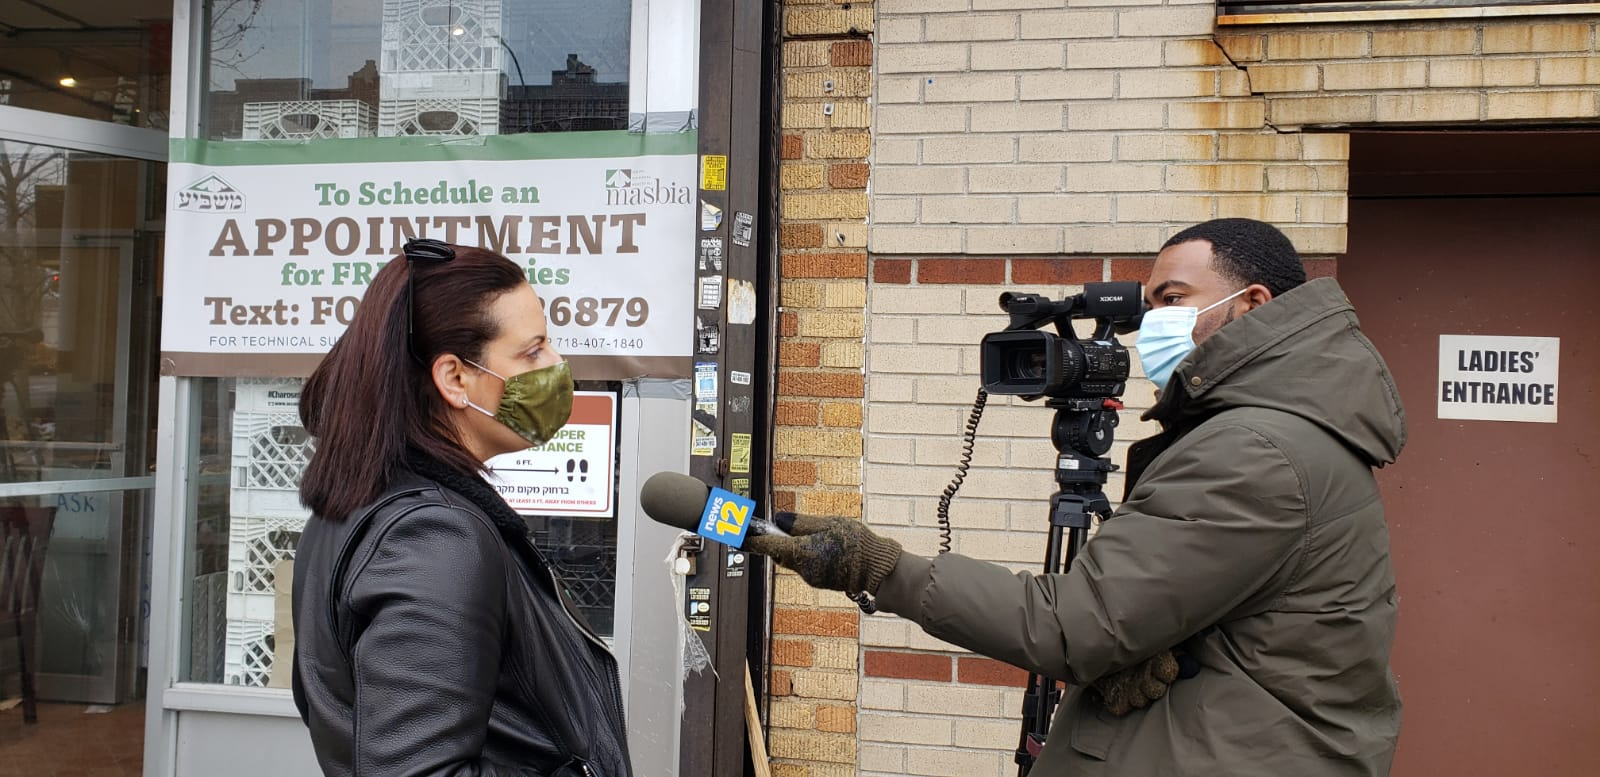 Reporter Phil Taitt of New12 interviewing our COO Chef Jordana Hirschel at Masbia Of Flatbush about Masbia expanding its locations